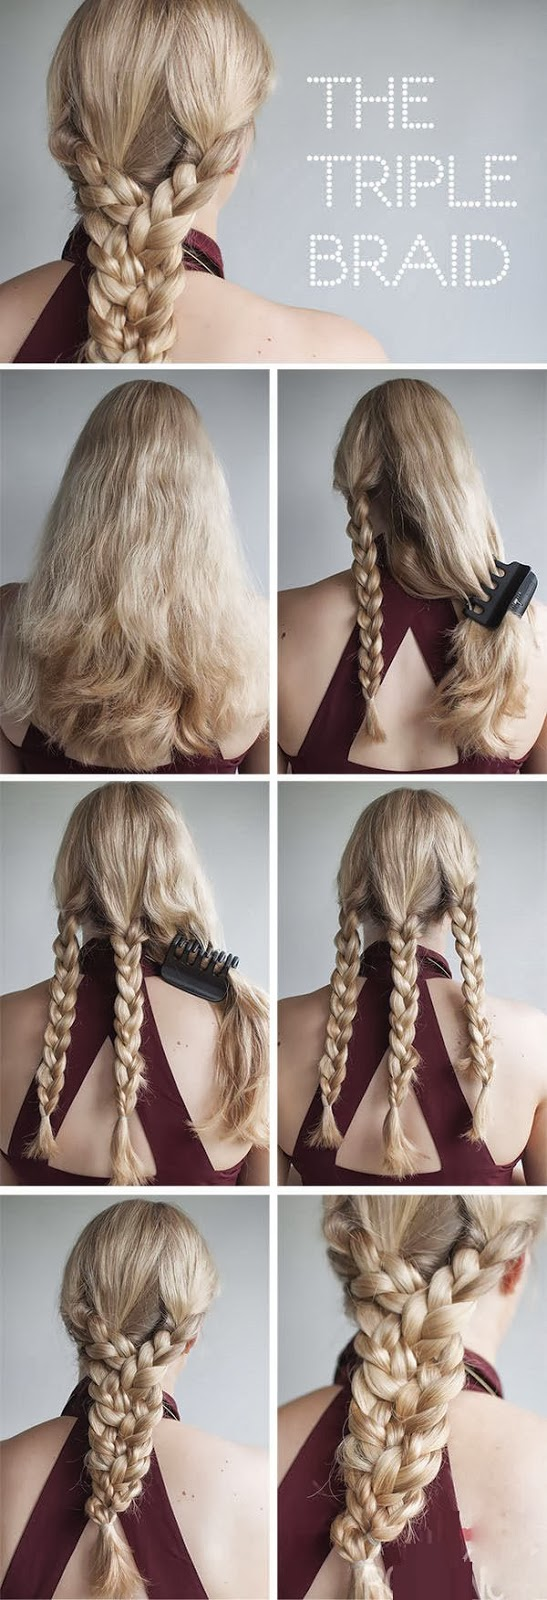 The Triple Braid